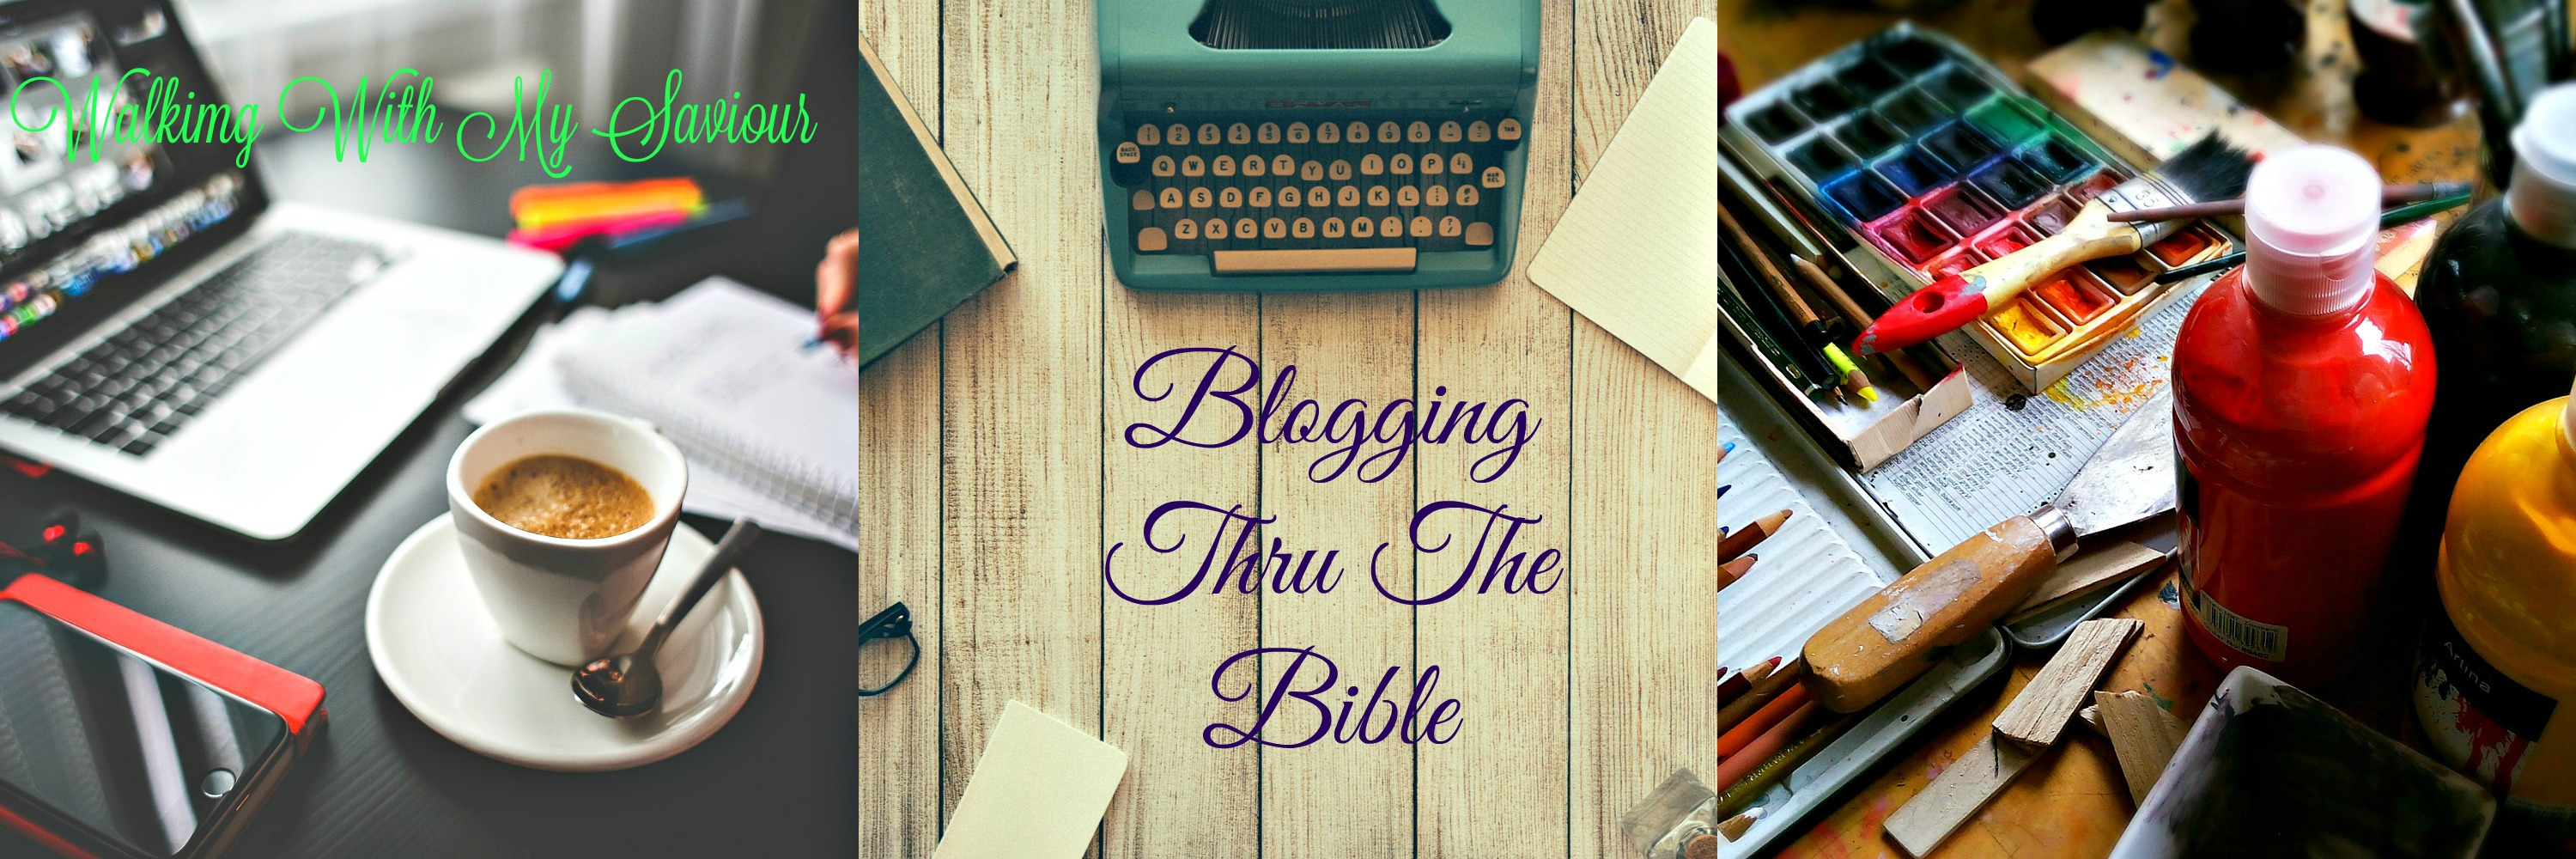 BLOGGING THRU THE BIBLE: What's Next?